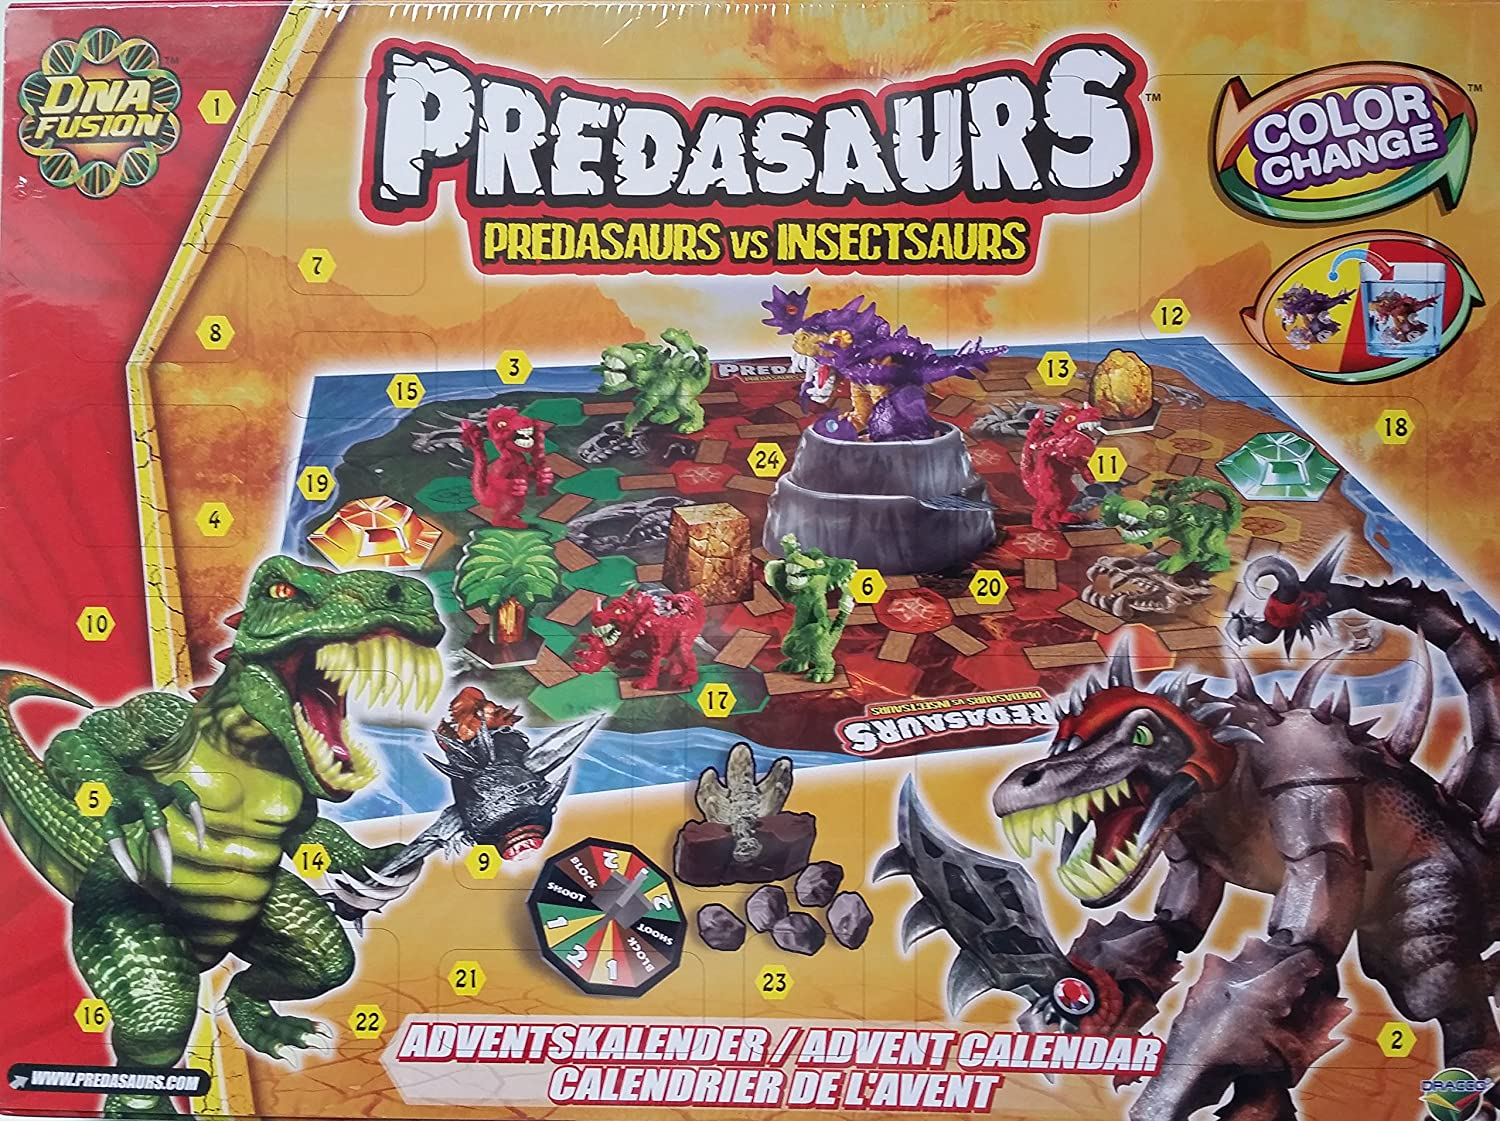 Dracco Advent Calendar Predas Dinosaurs Dinosaur Dinos Colour Change